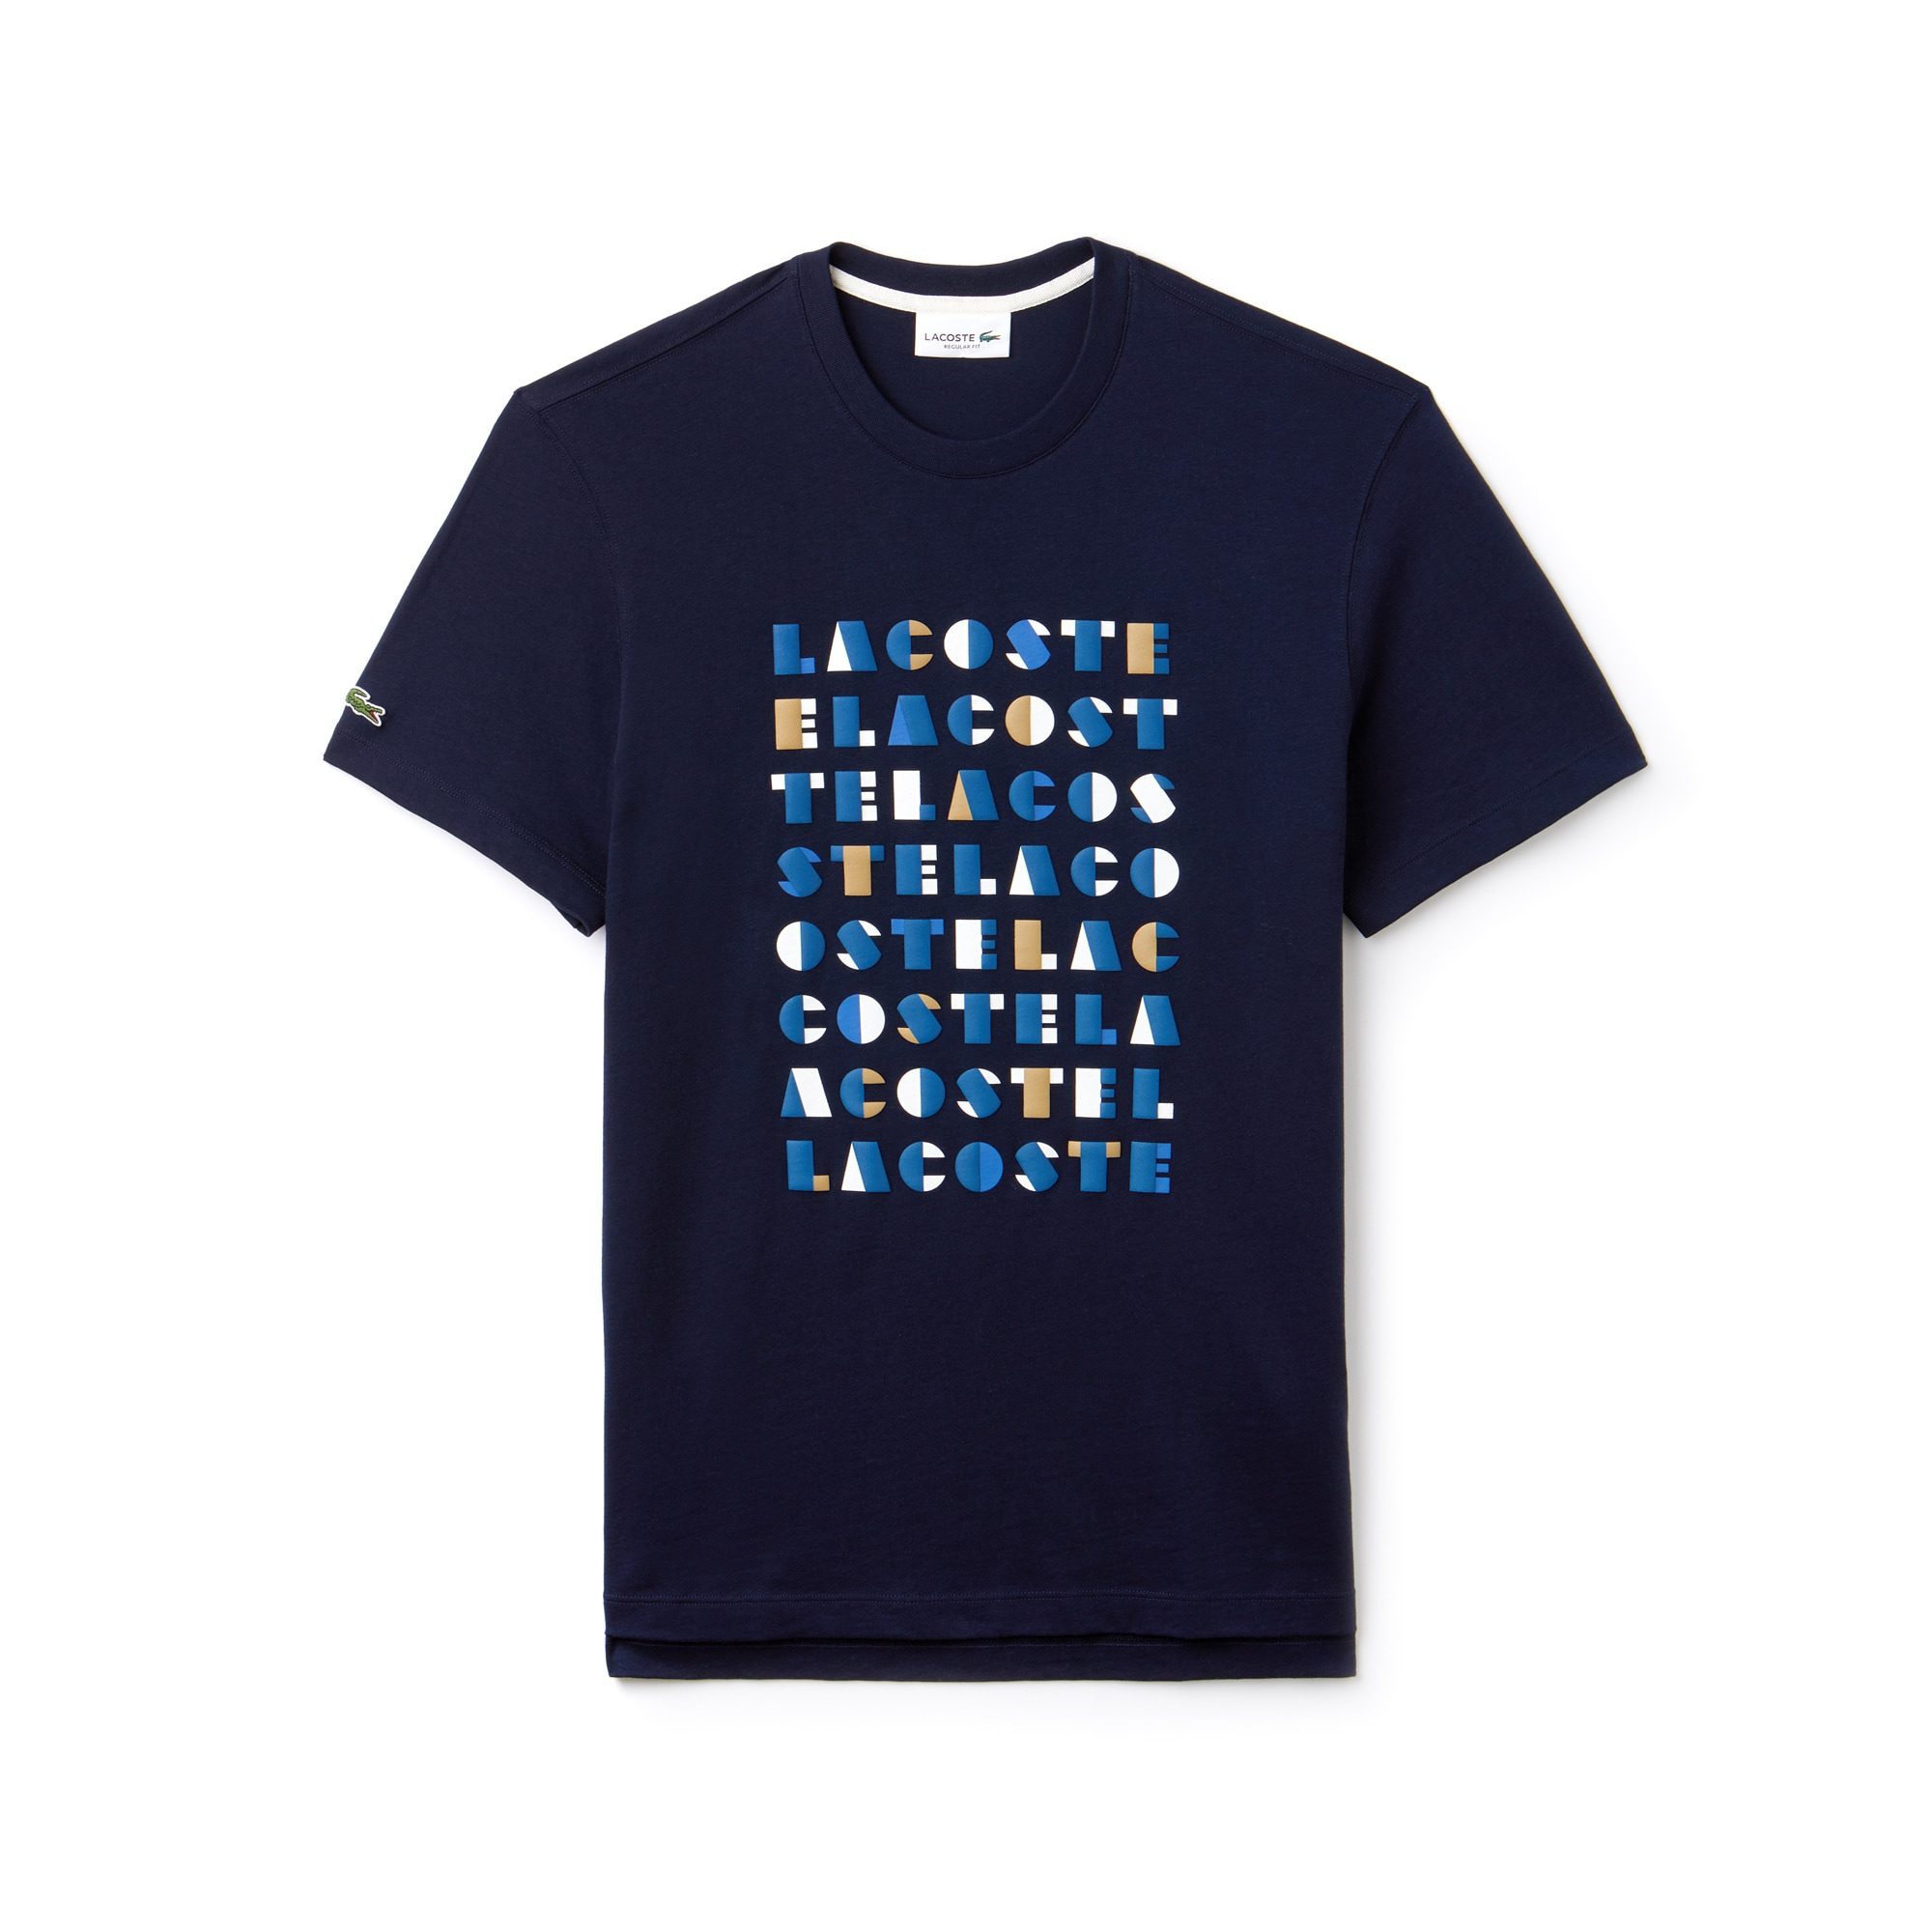 Men's Crew Neck 3D Lettering Cotton Jersey T-shirt